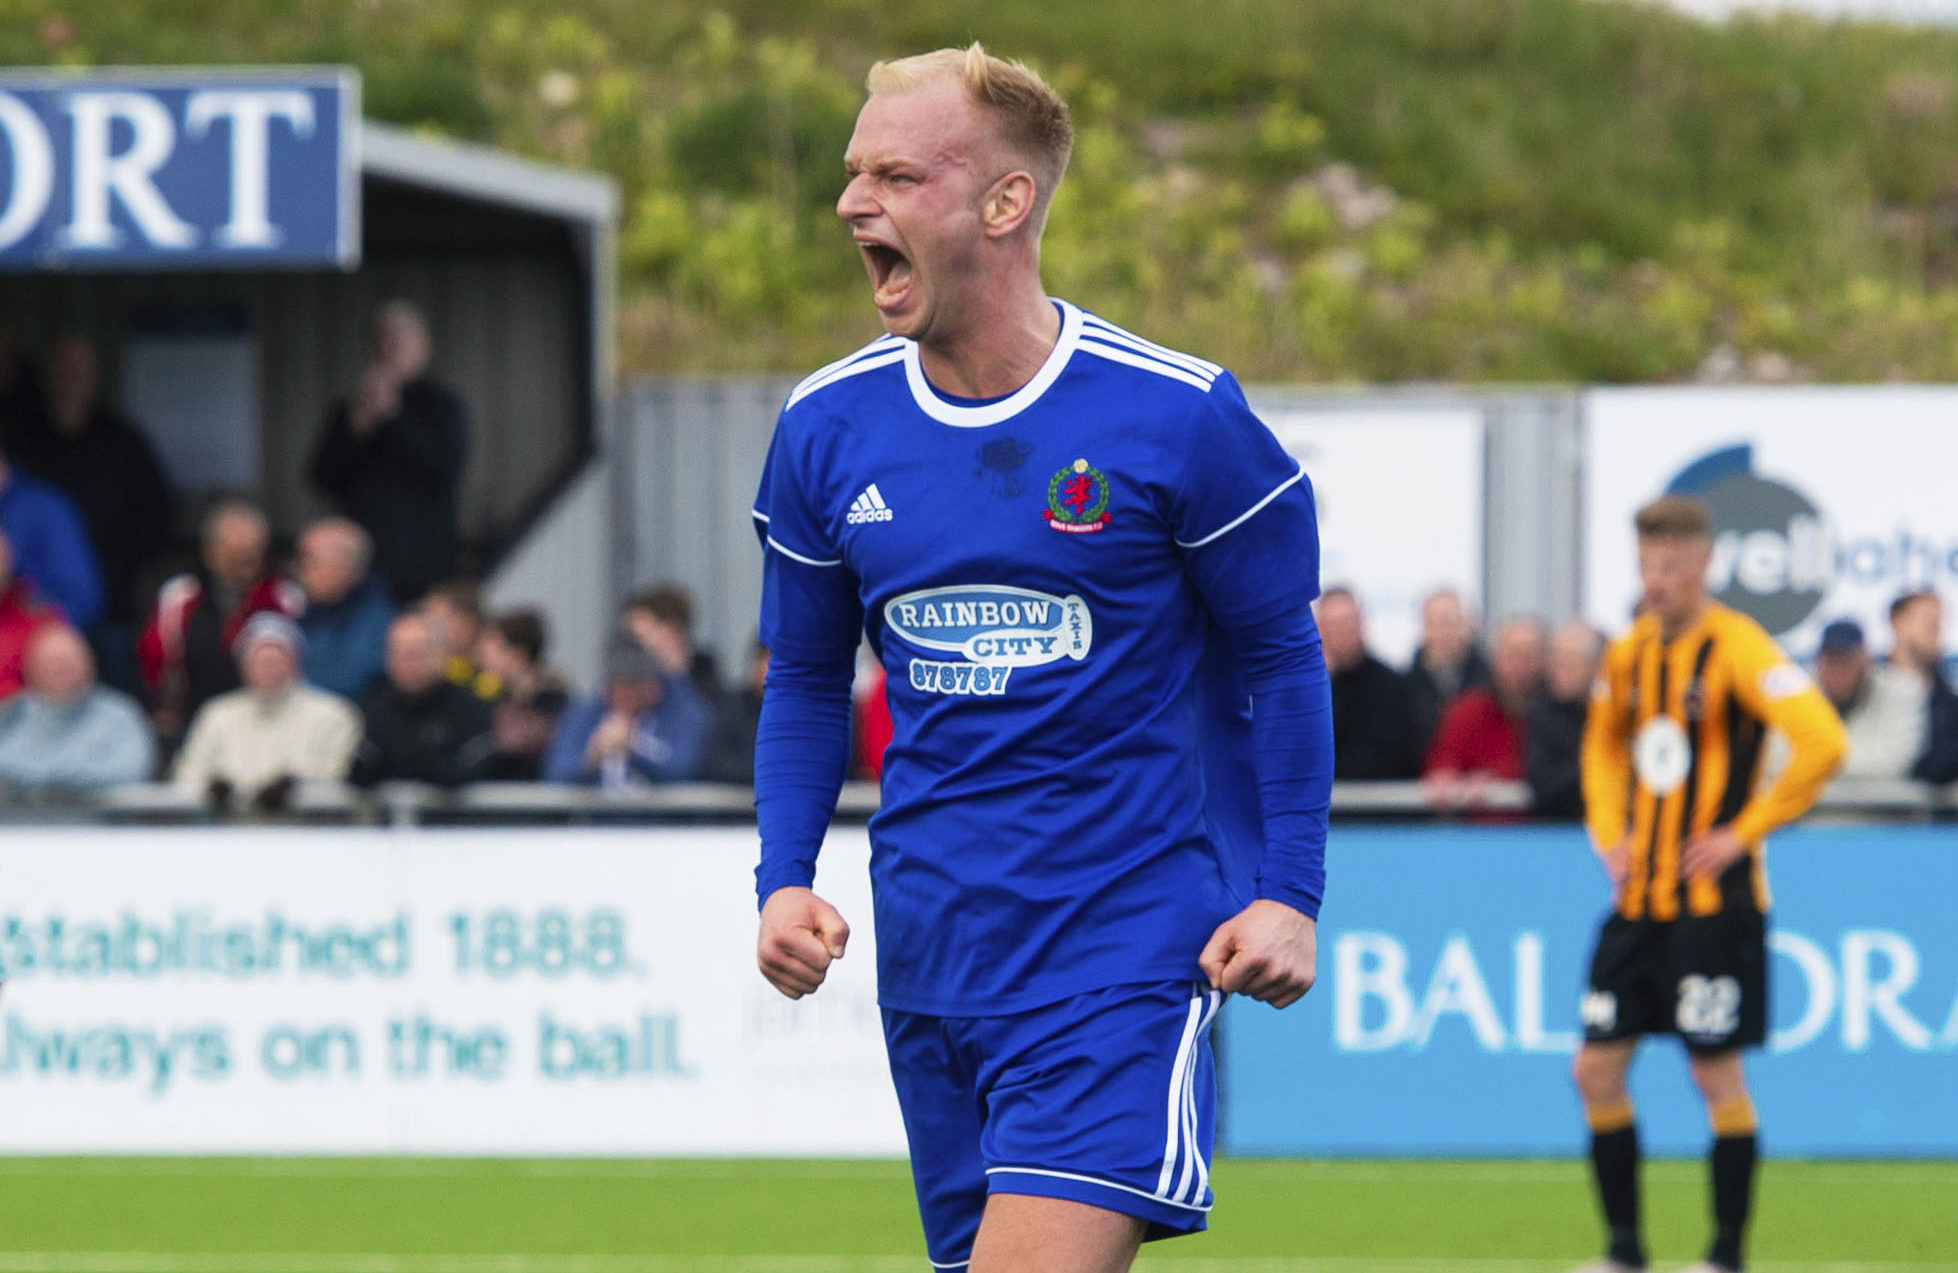 Jordon Brown played a part in getting Cove Rangers promoted to the SPFL.